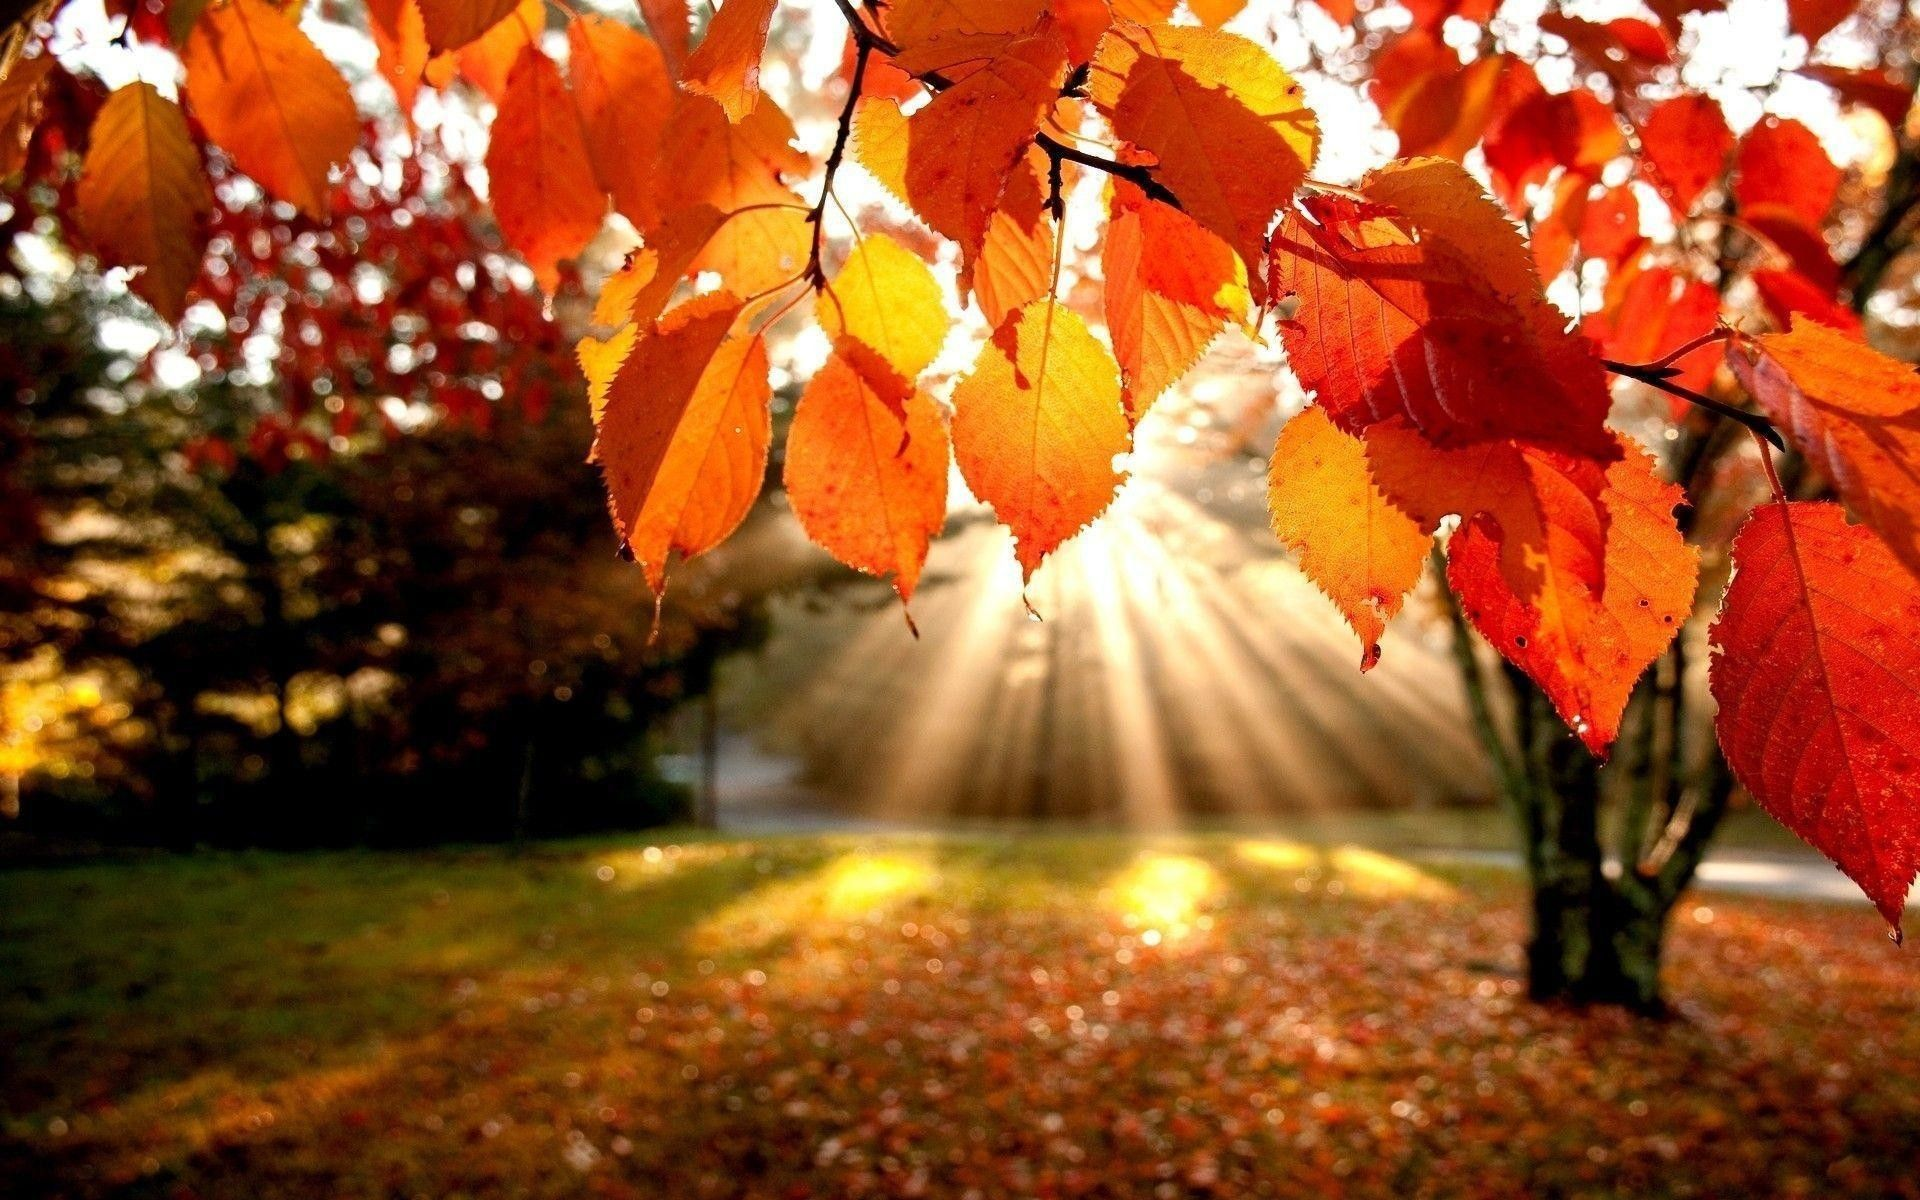 Fall Laptop Wallpapers   Top Fall Laptop Backgrounds 1920x1200